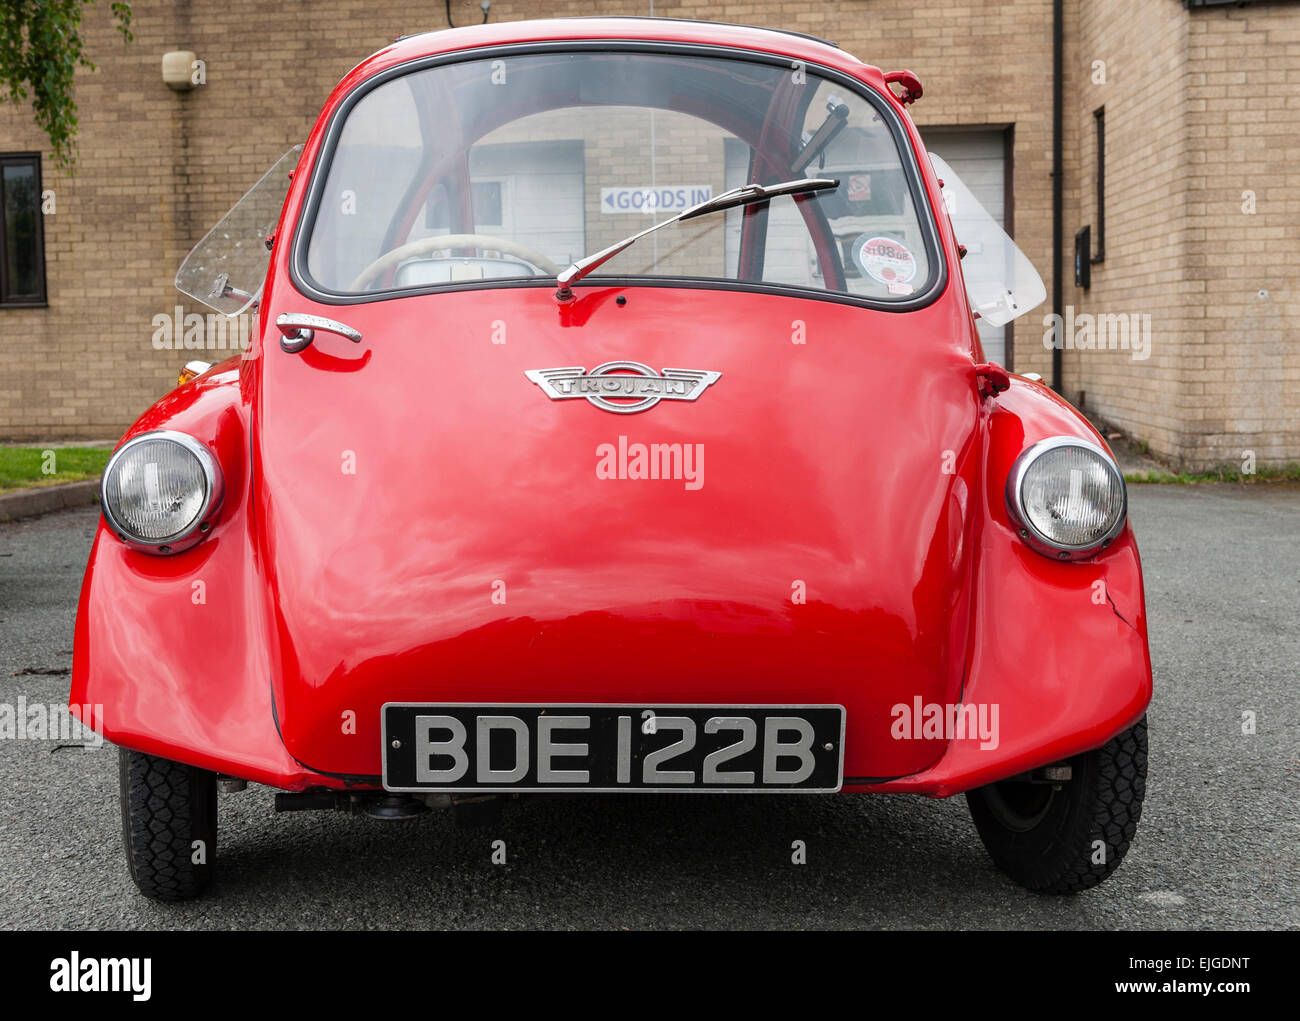 A three-wheeled Trojan 200 bubble car or microcar dating from the ...